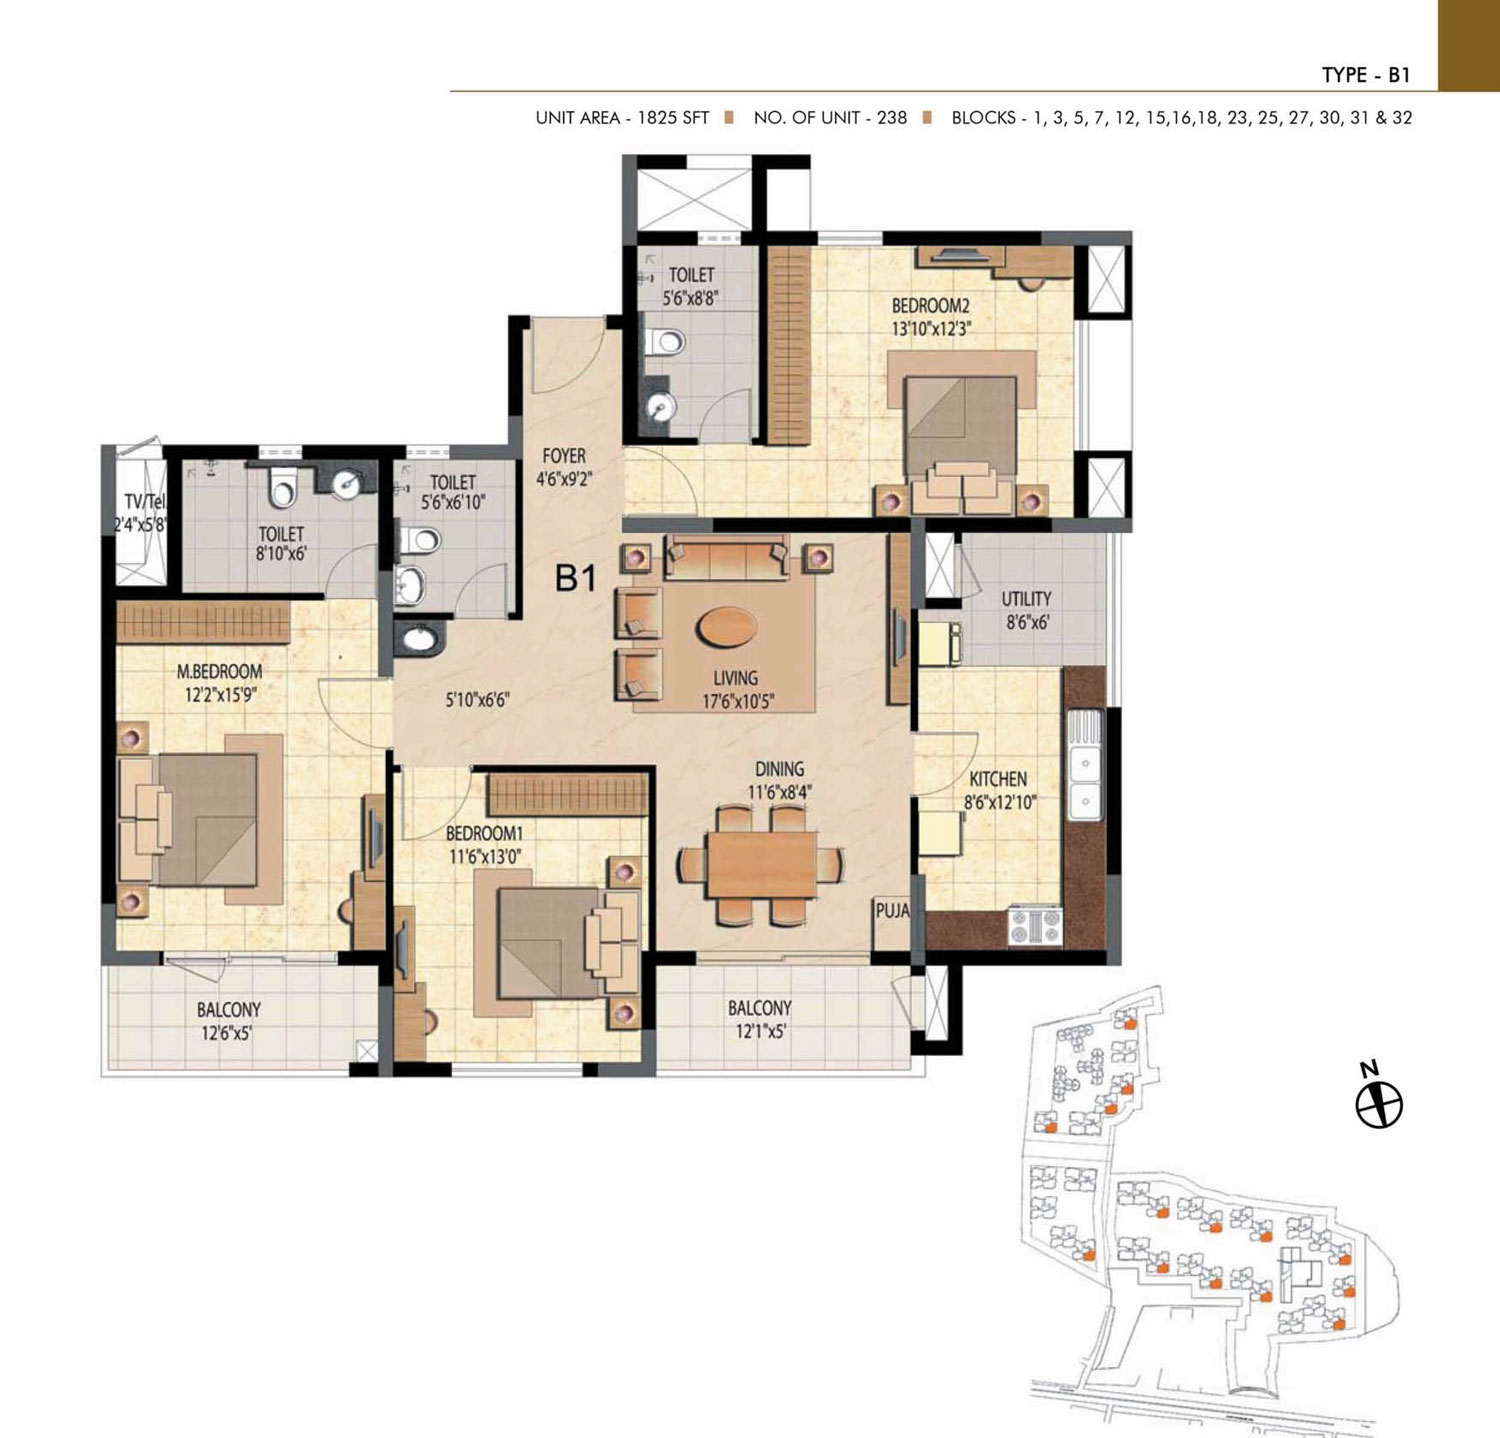 Type B1 - 2 Bed - 1825 Sq Ft